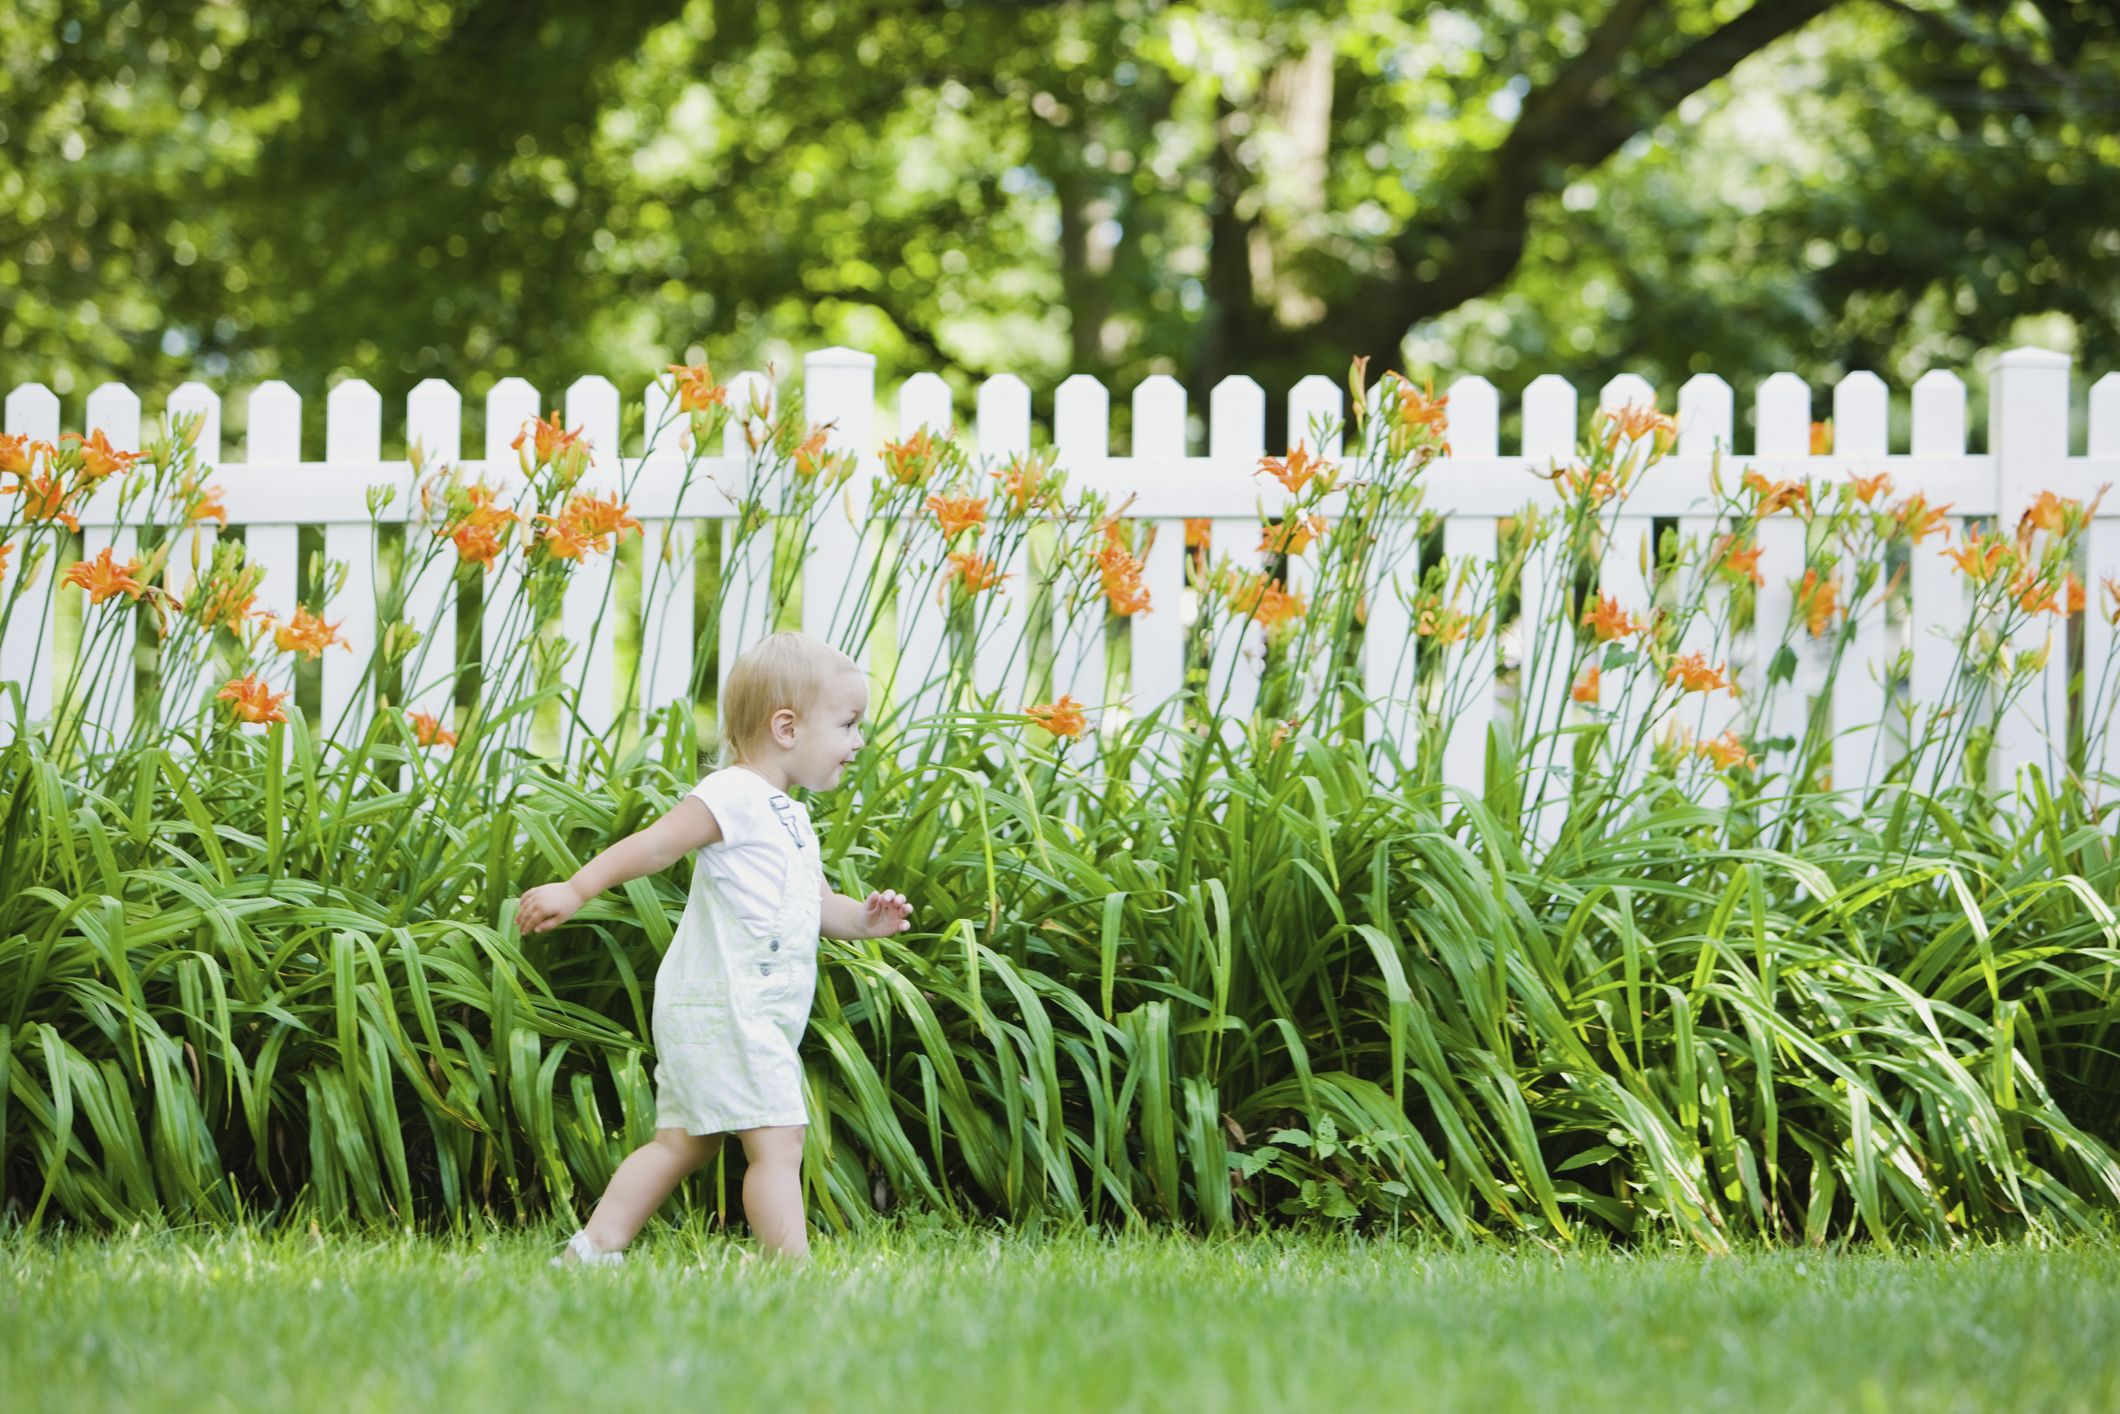 Picture of: 11 Backyard Fence Ideas Garden Fence Options For Privacy